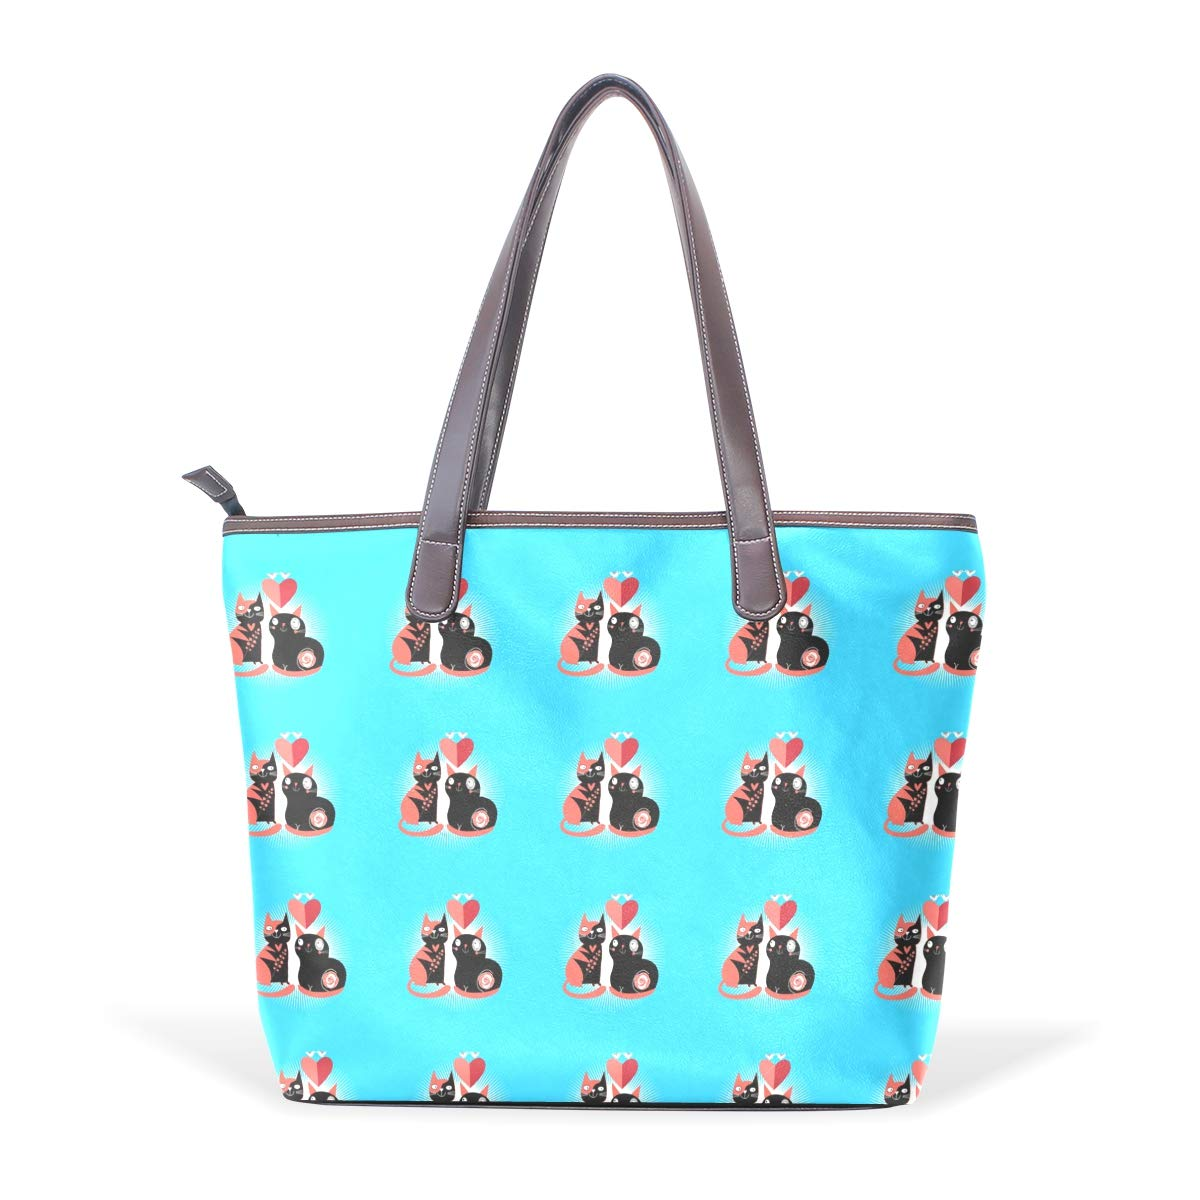 Womens Leather Cats Lovers Handbag Satchel Tote Bag Tote Purse